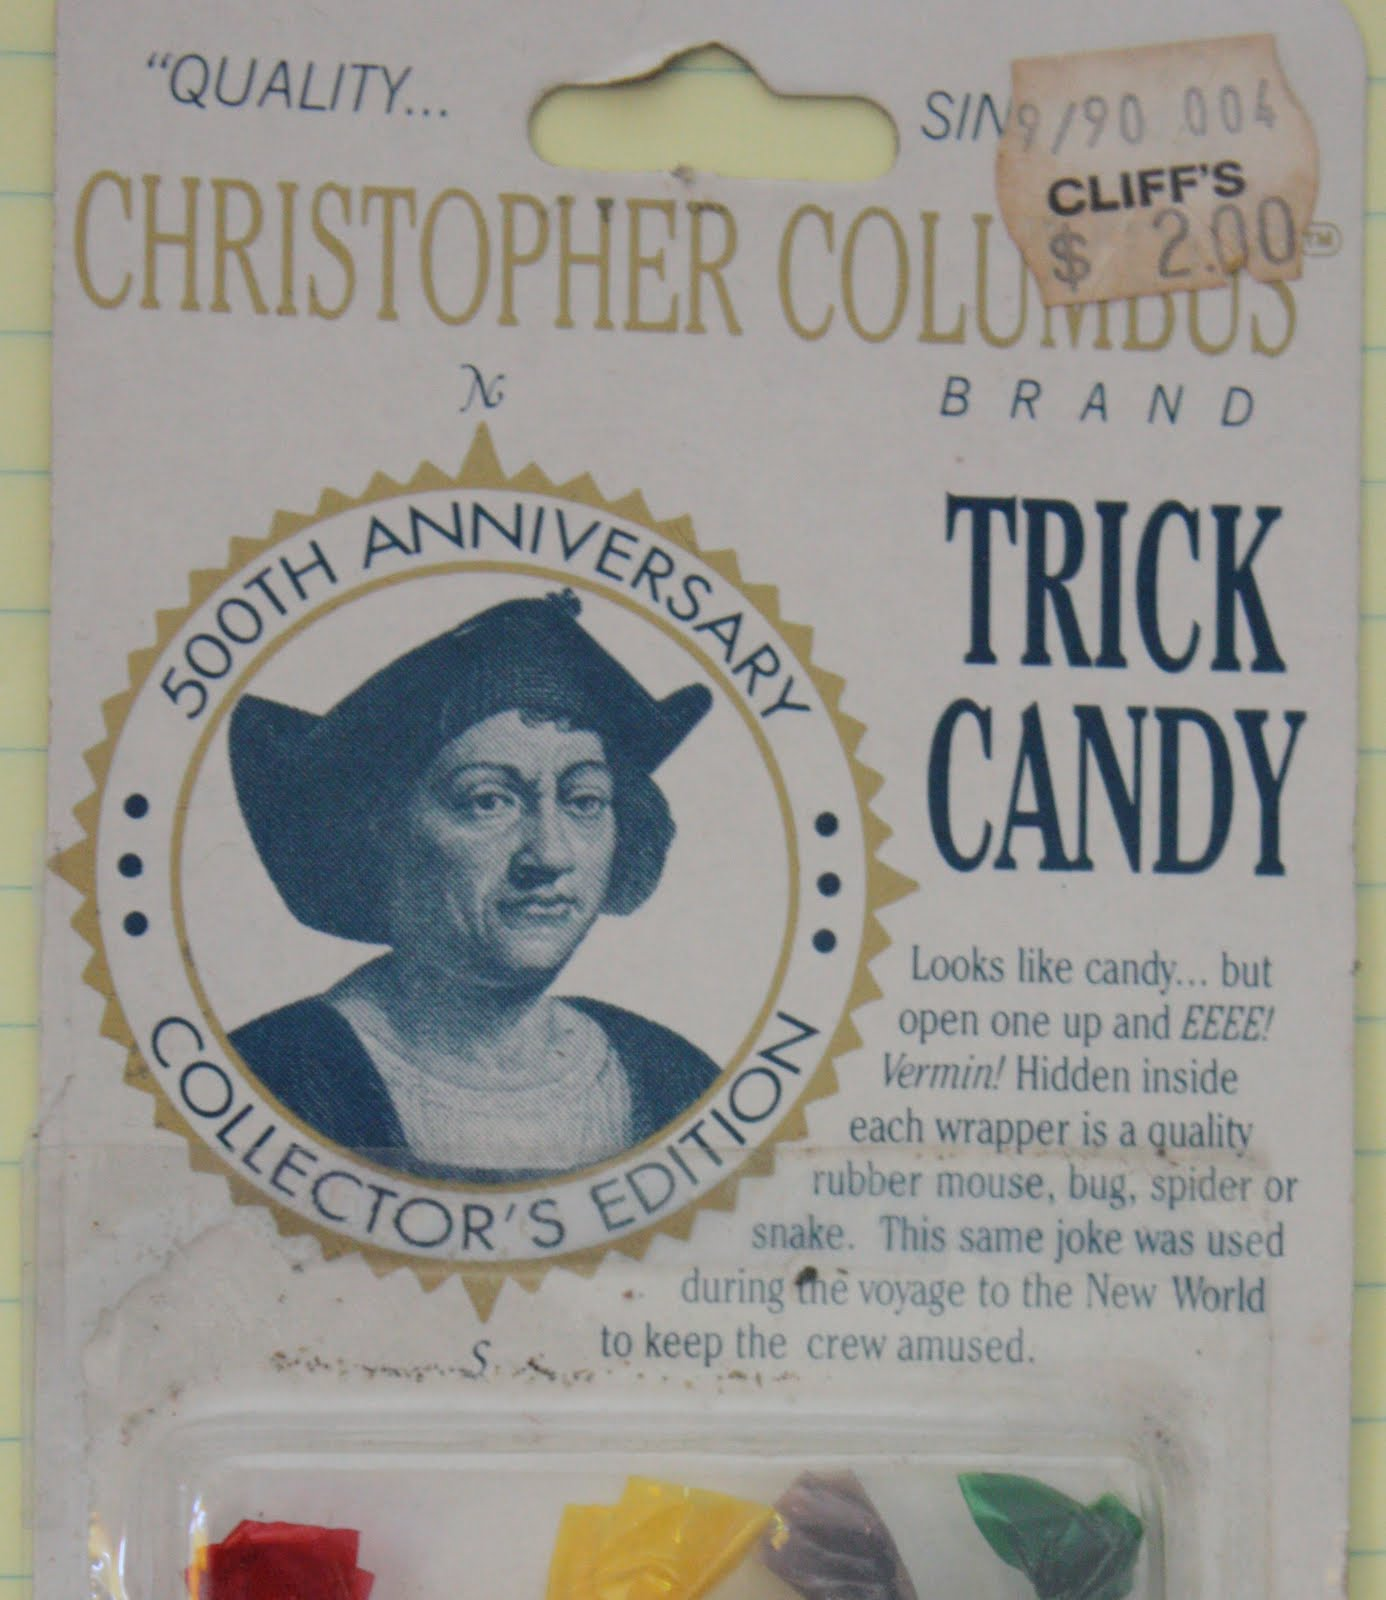 hank chapot green without borders christopher columbus brand